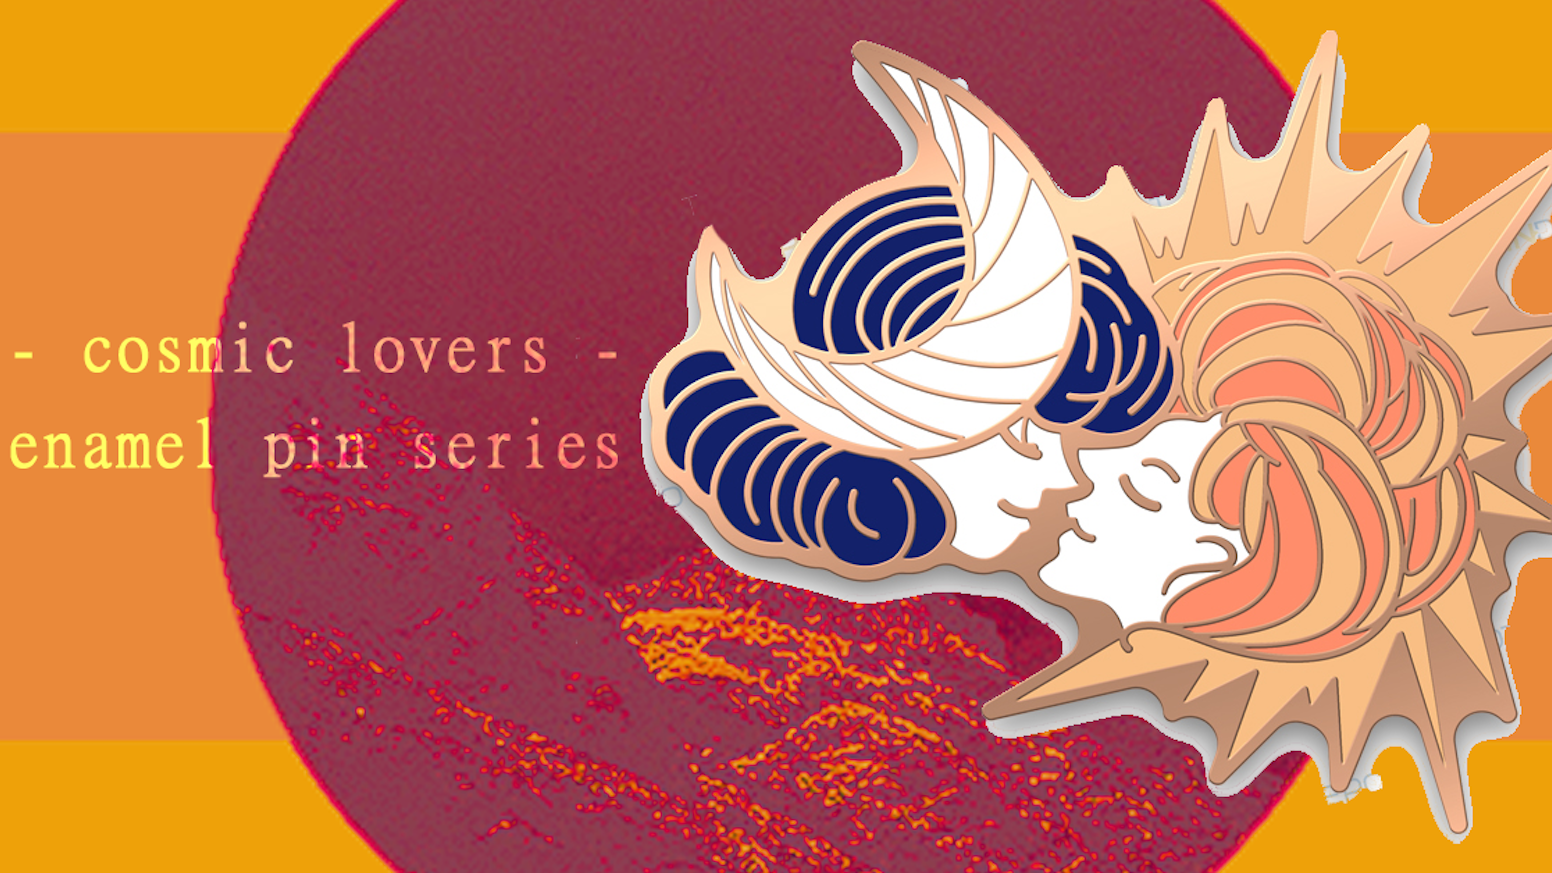 a series of enamel pins focusing on cosmic lovers of the lgbtq variety